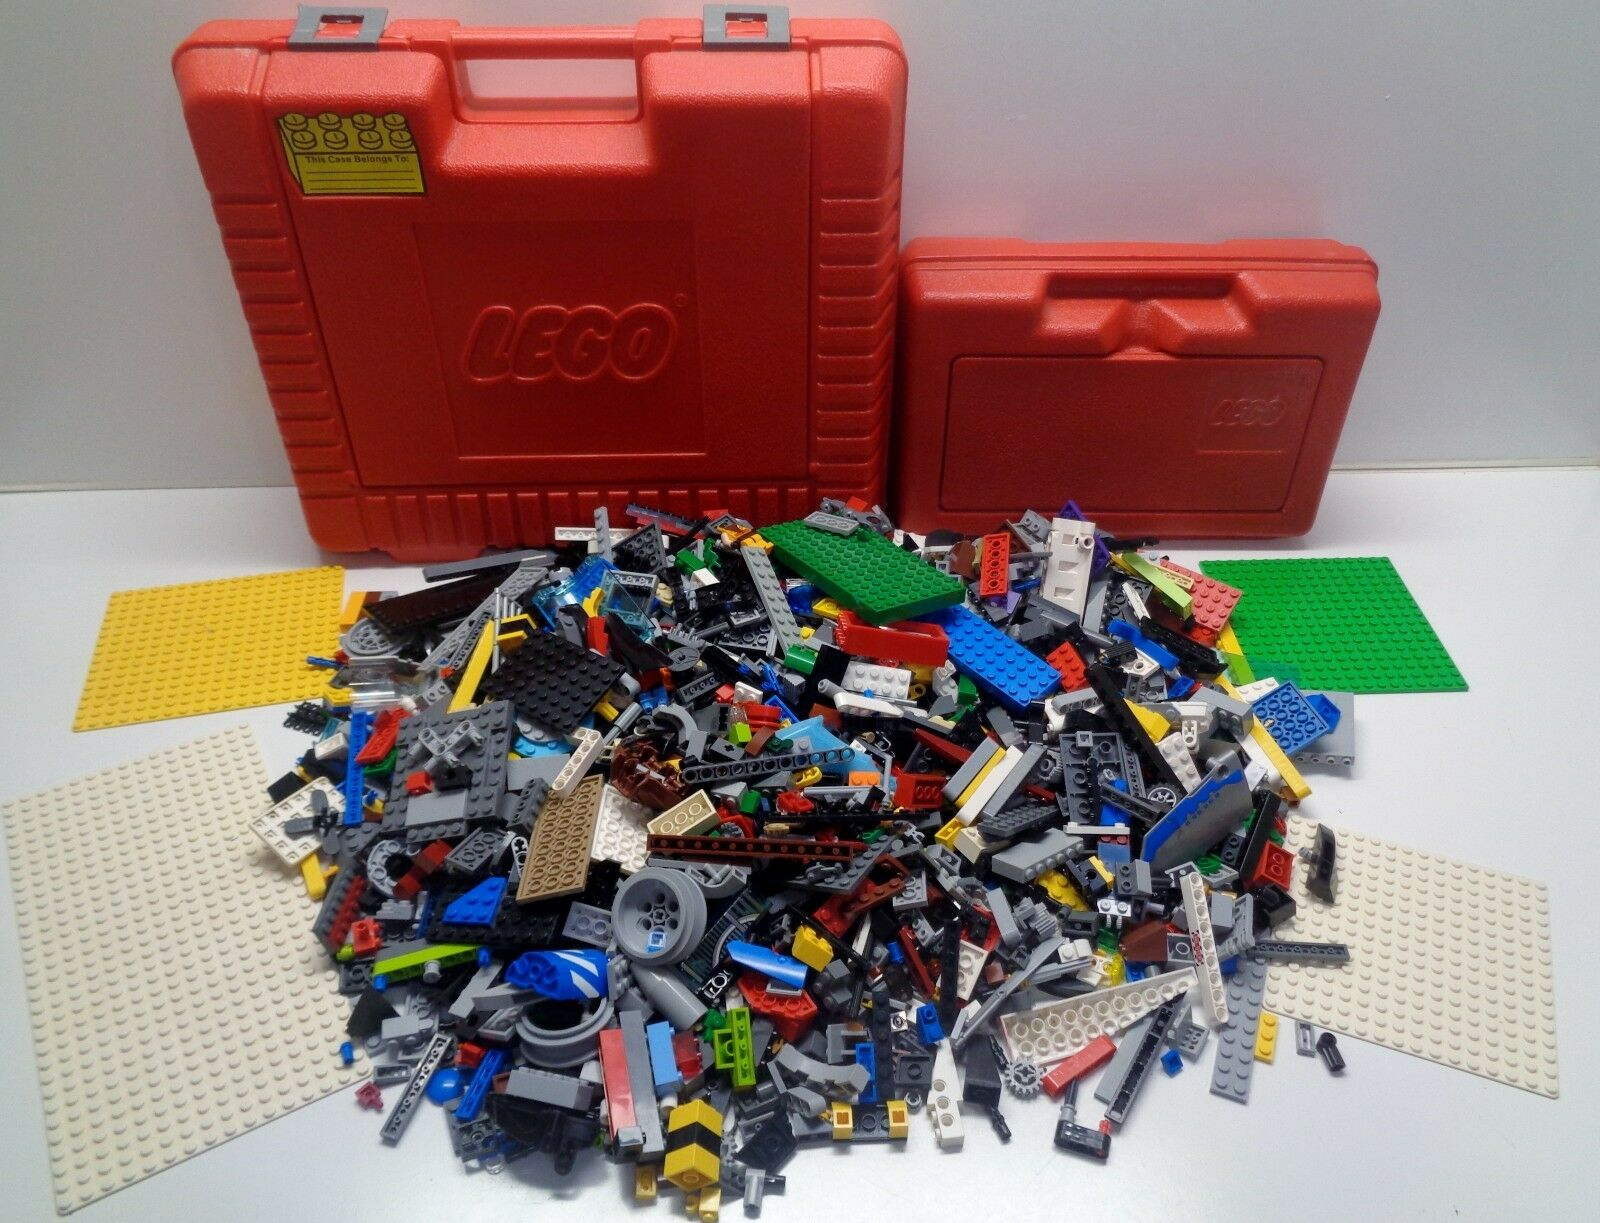 2 LEGO VINTAGE ROT Storage Containers & 4.75 pounds of Lego Parts Pieces